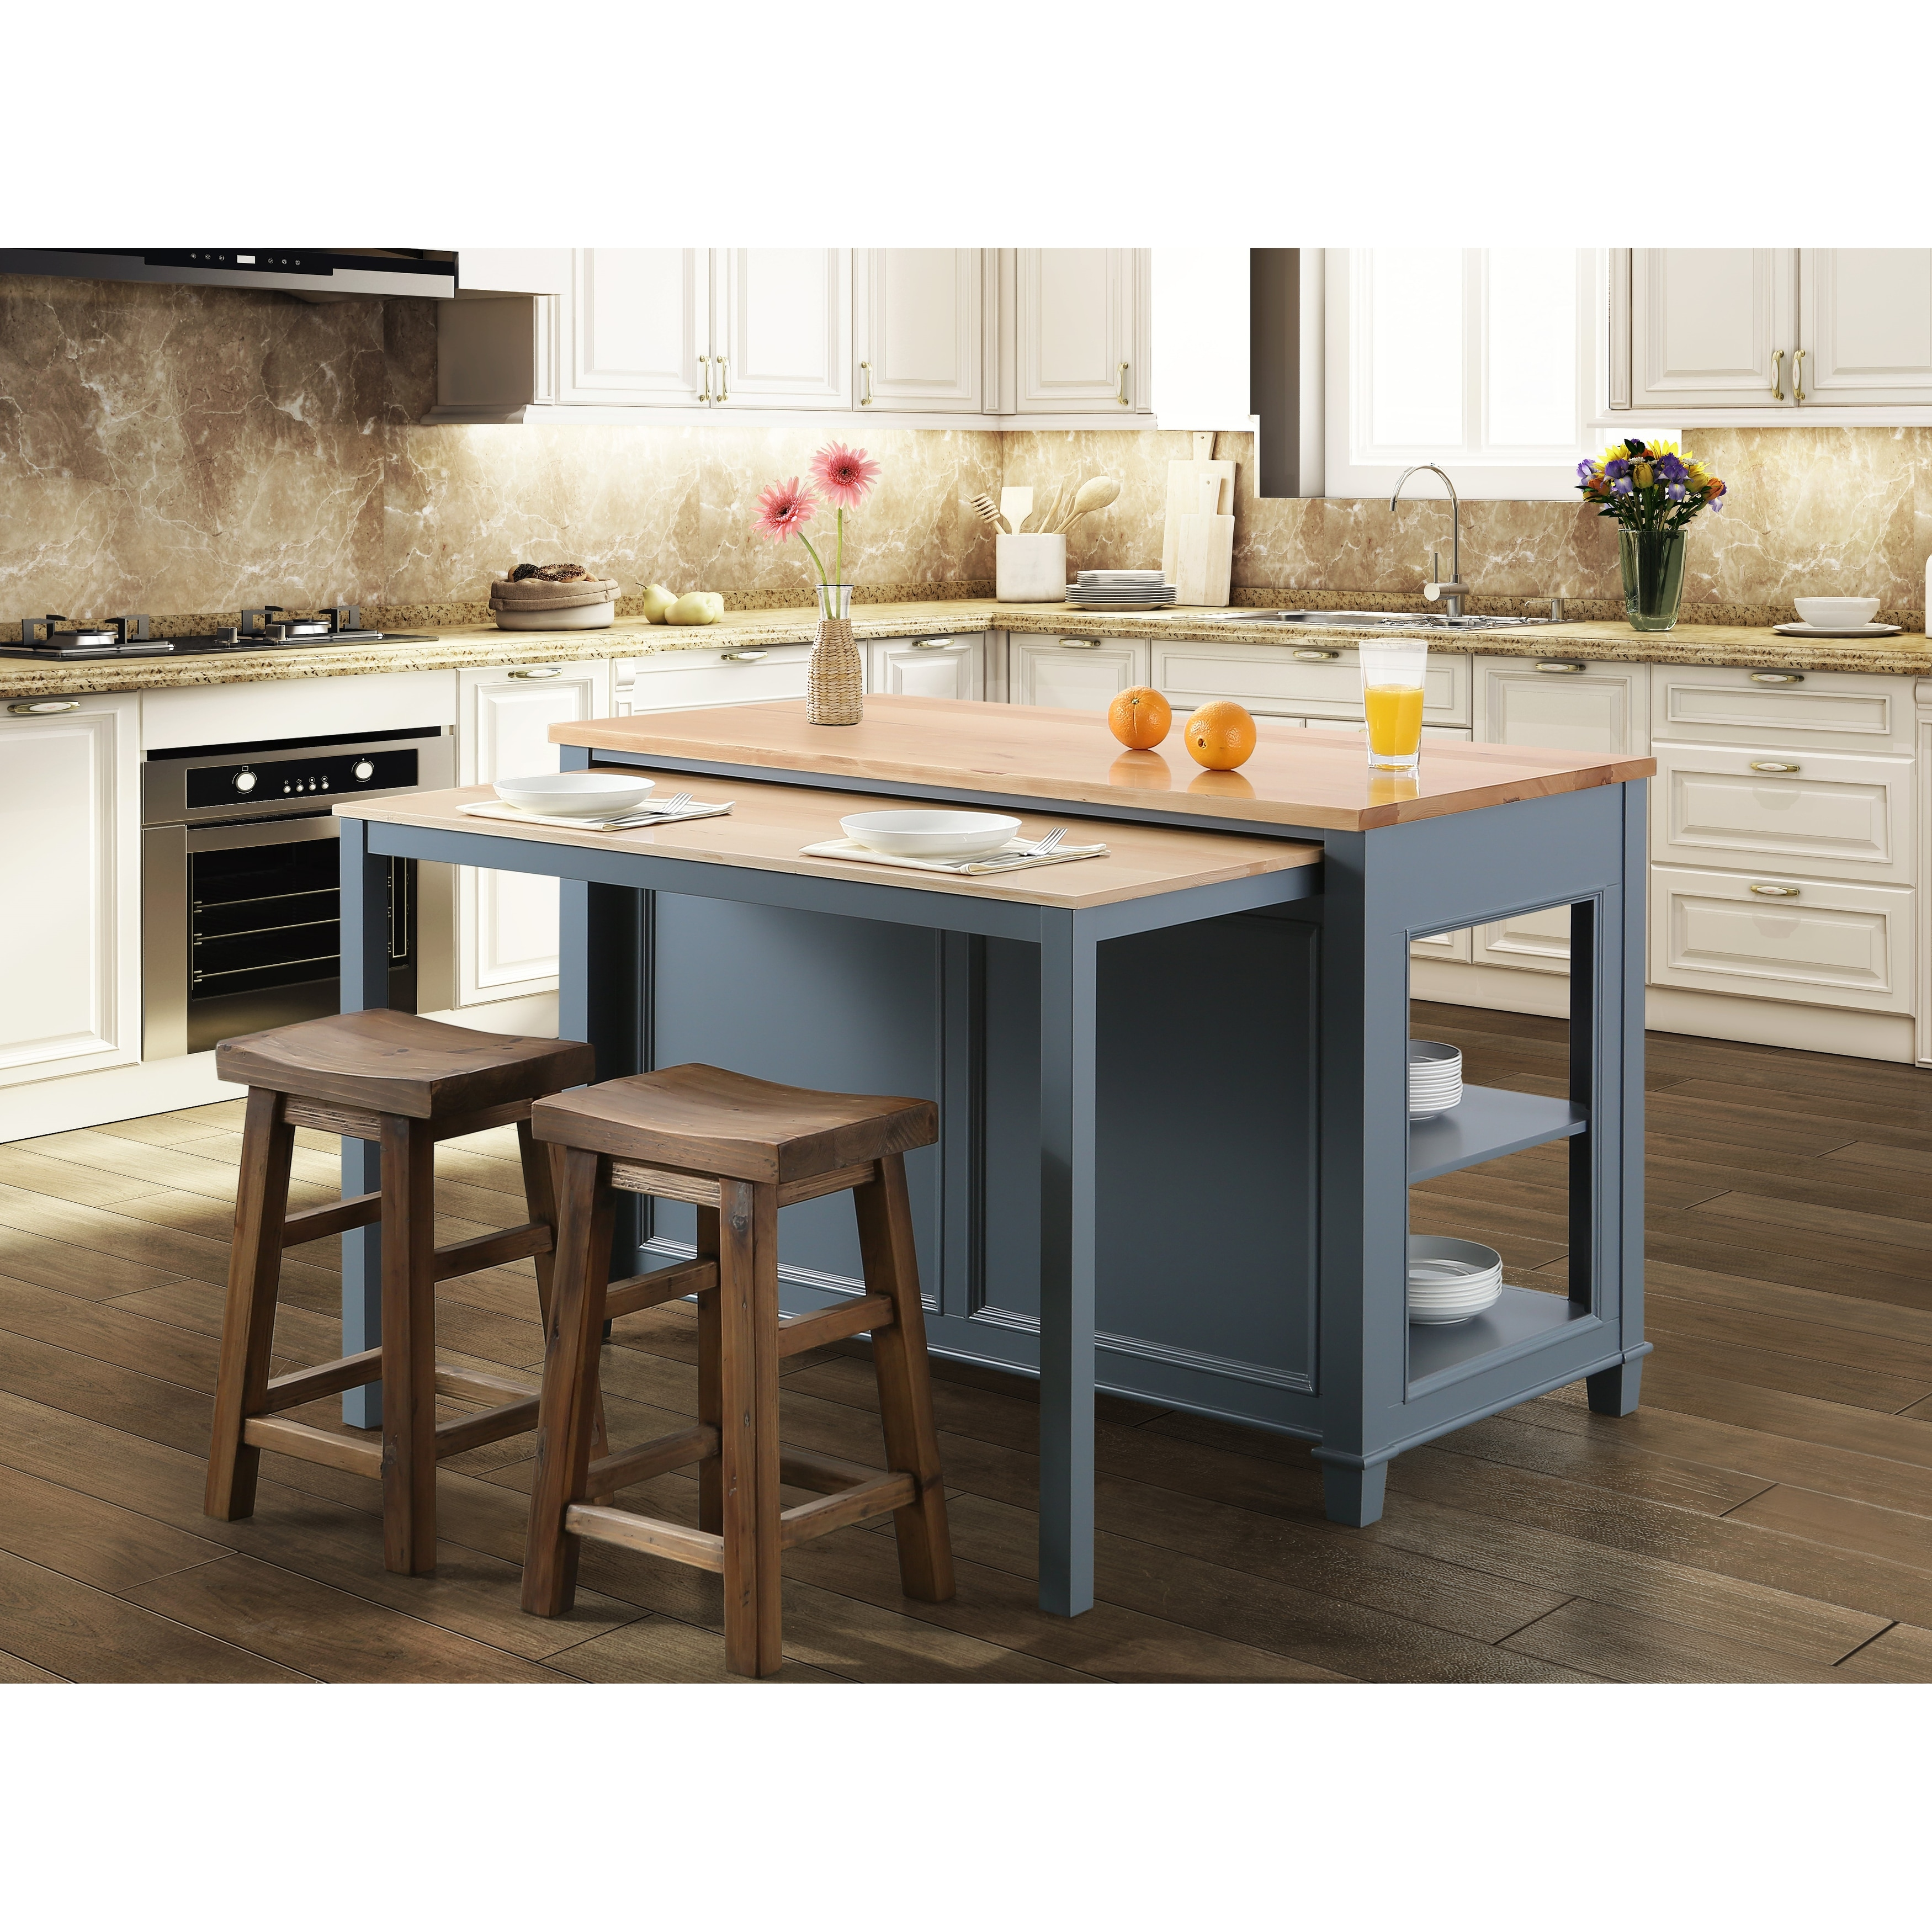 Medley 54 Inch Grey Kitchen Island With Slide Out Table N A Overstock 29108636